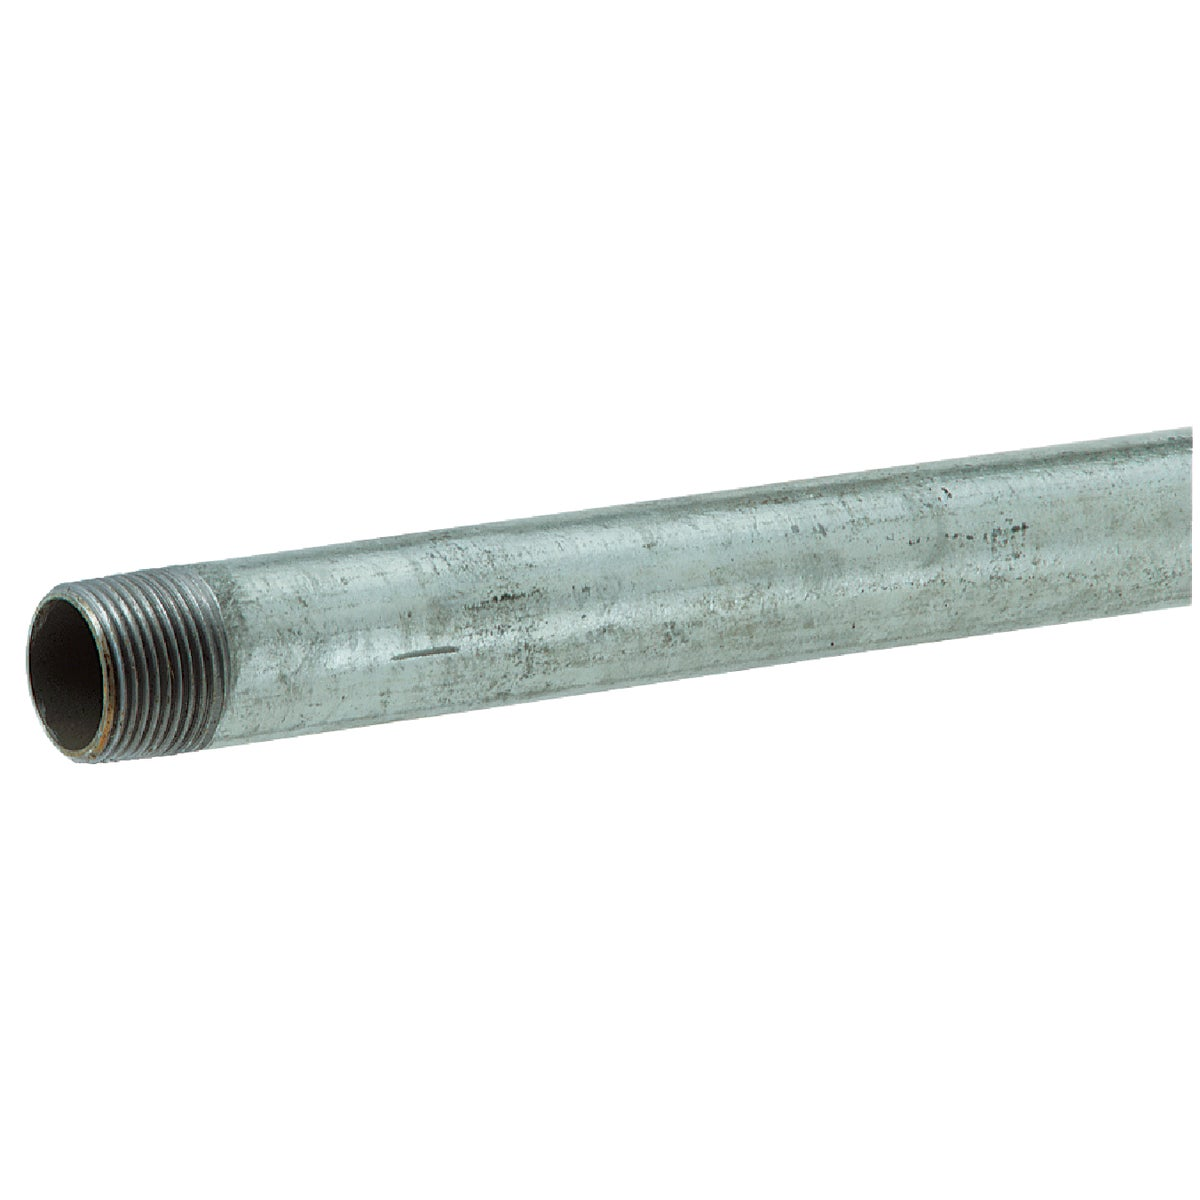 1-1/4X36GALV RDI-CT PIPE - 11/4X36 by Southland Pipe Nippl